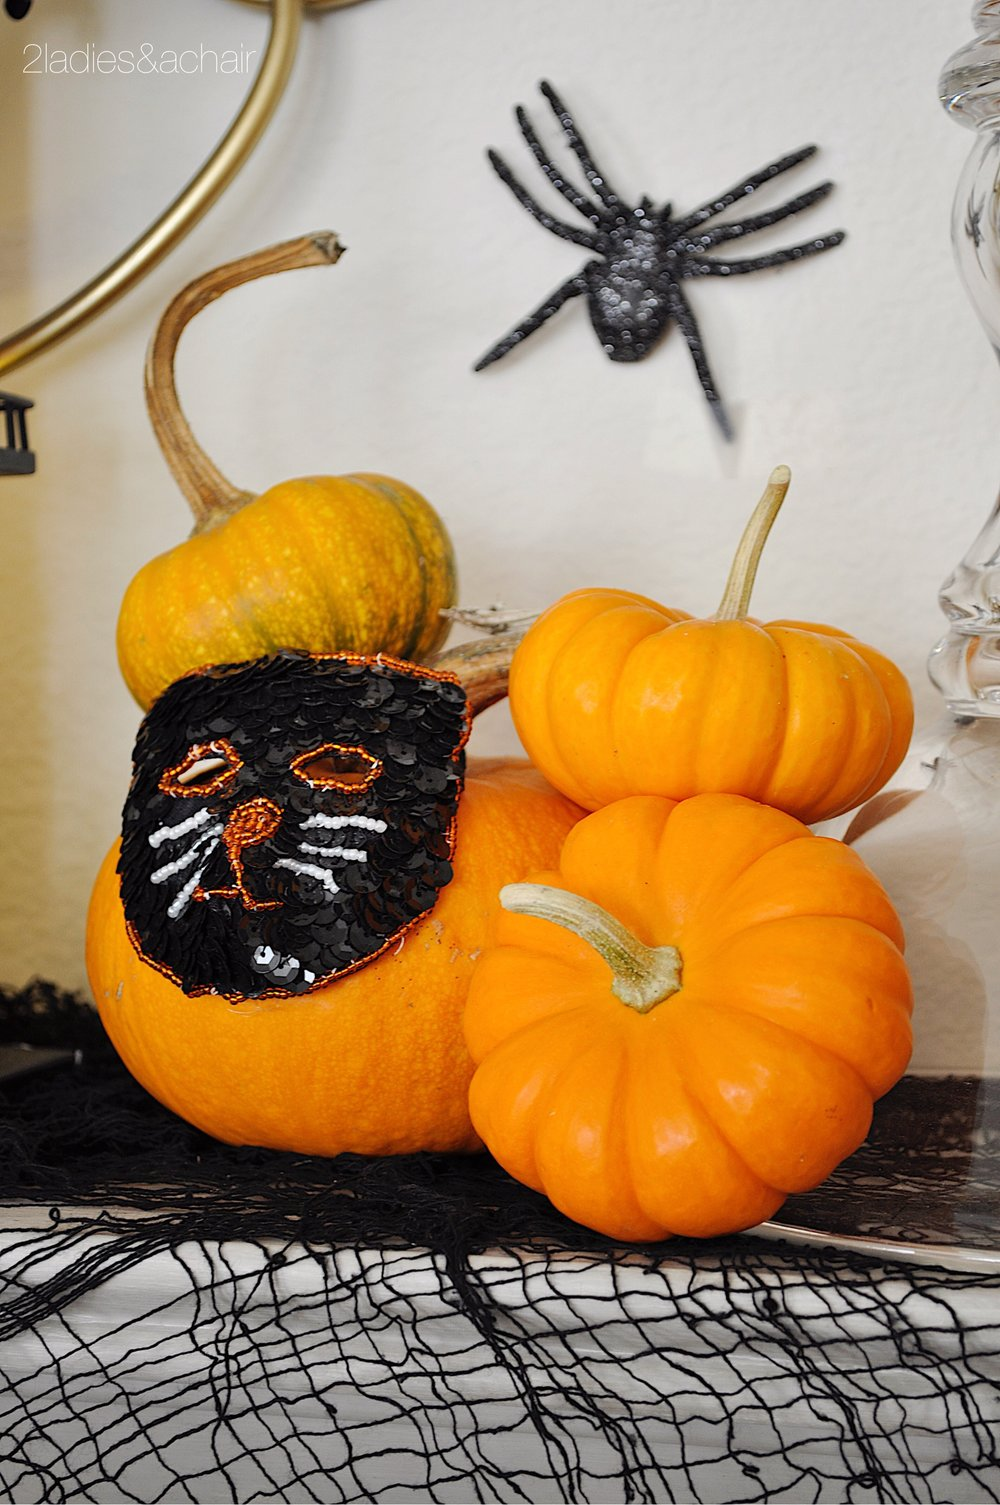 halloween mantel decorations IMG_8227.JPG